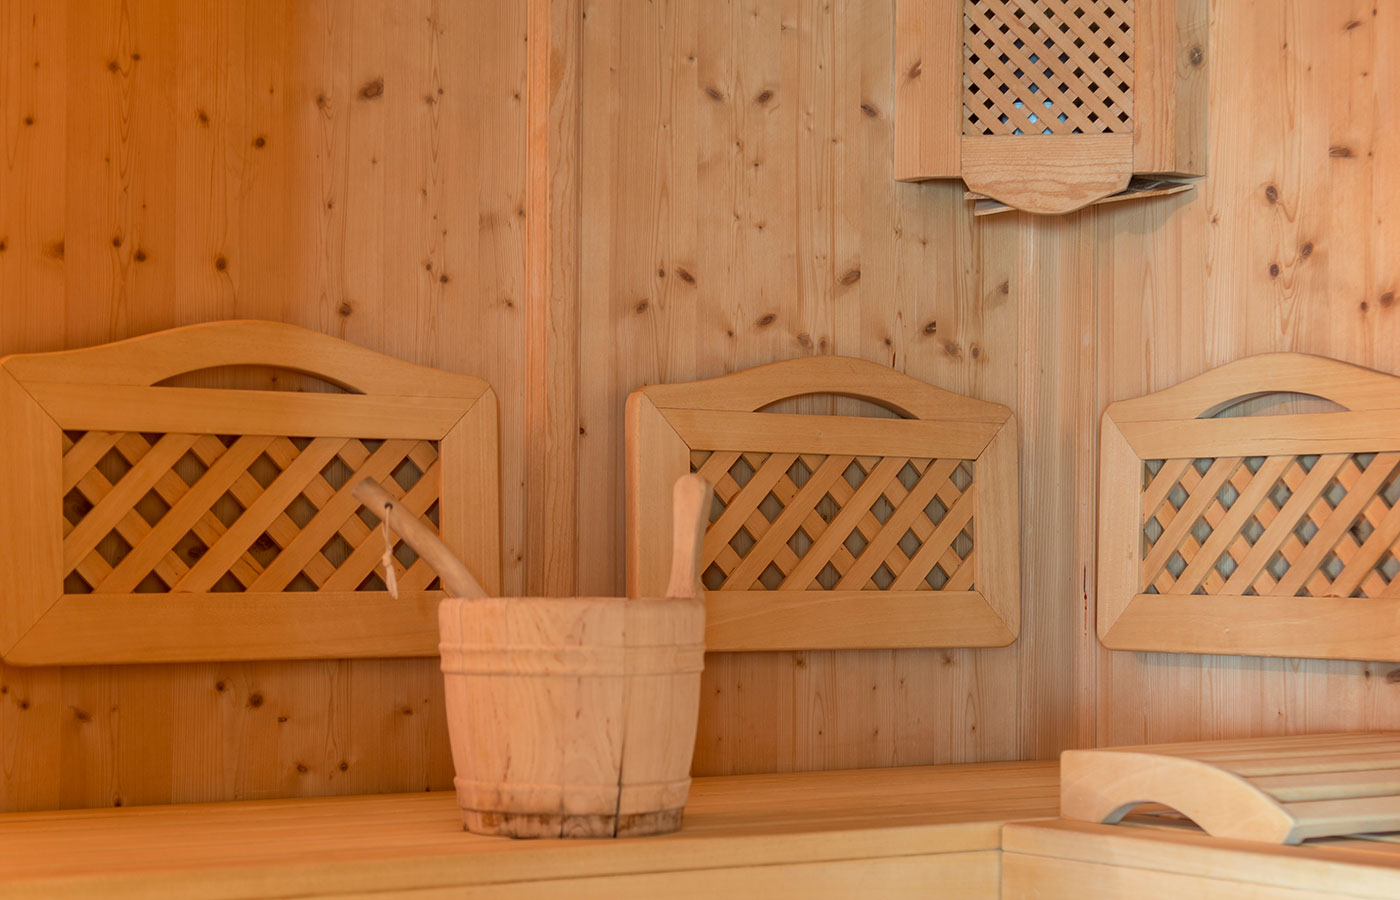 Sitting and walls in natural wood inside the sauna of Hotel Waldheim in South Tyrol